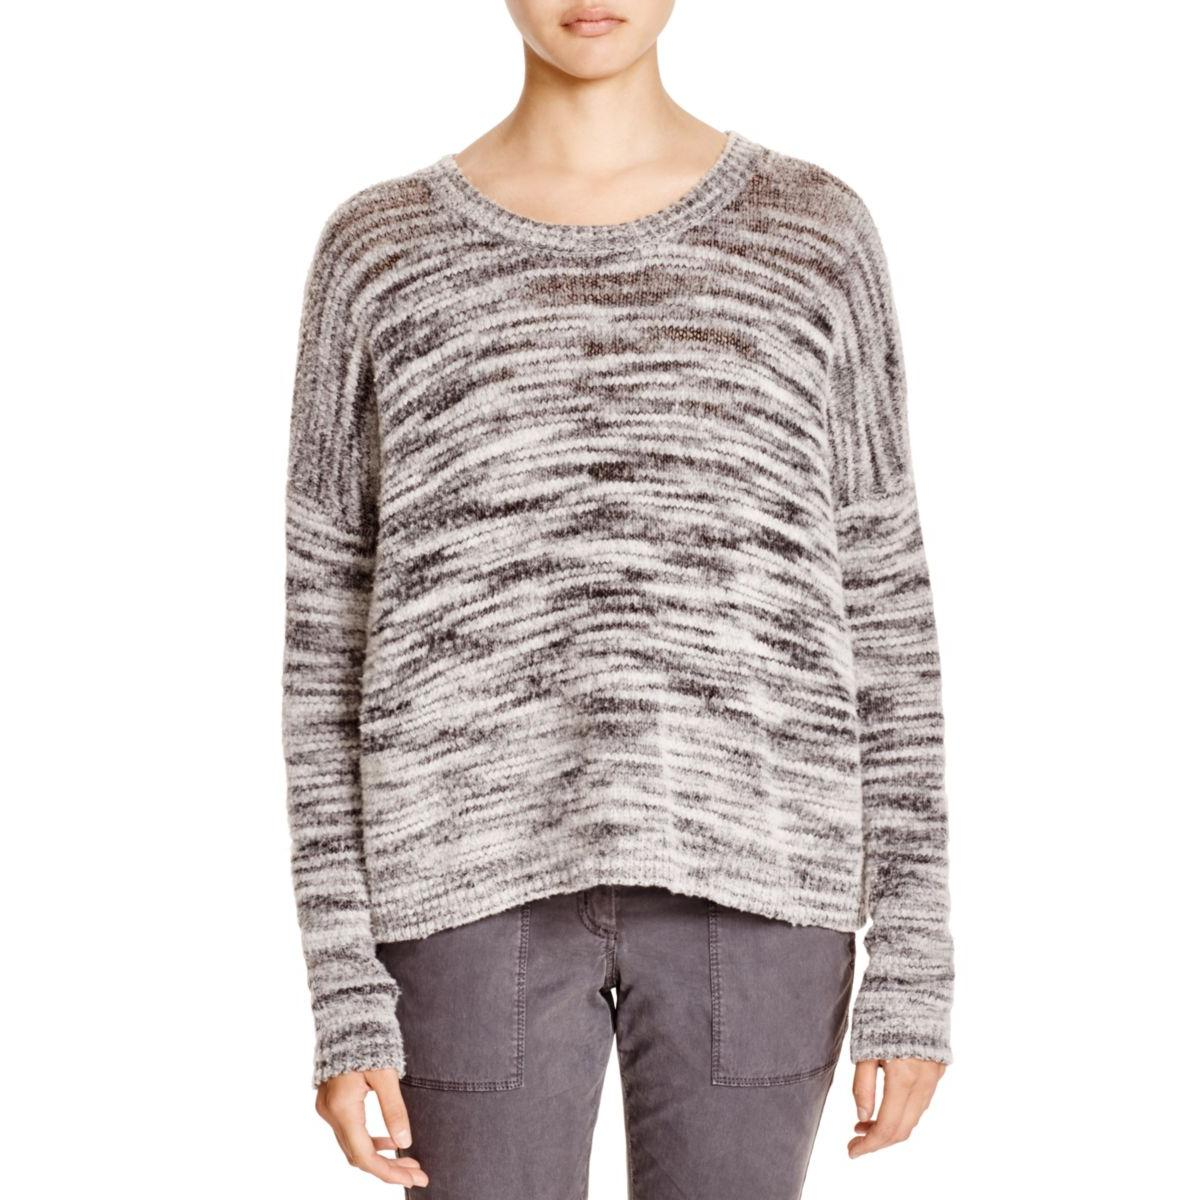 Pure DKNY Womens Wool Crew Neck Pullover Sweater by Pure DKNY